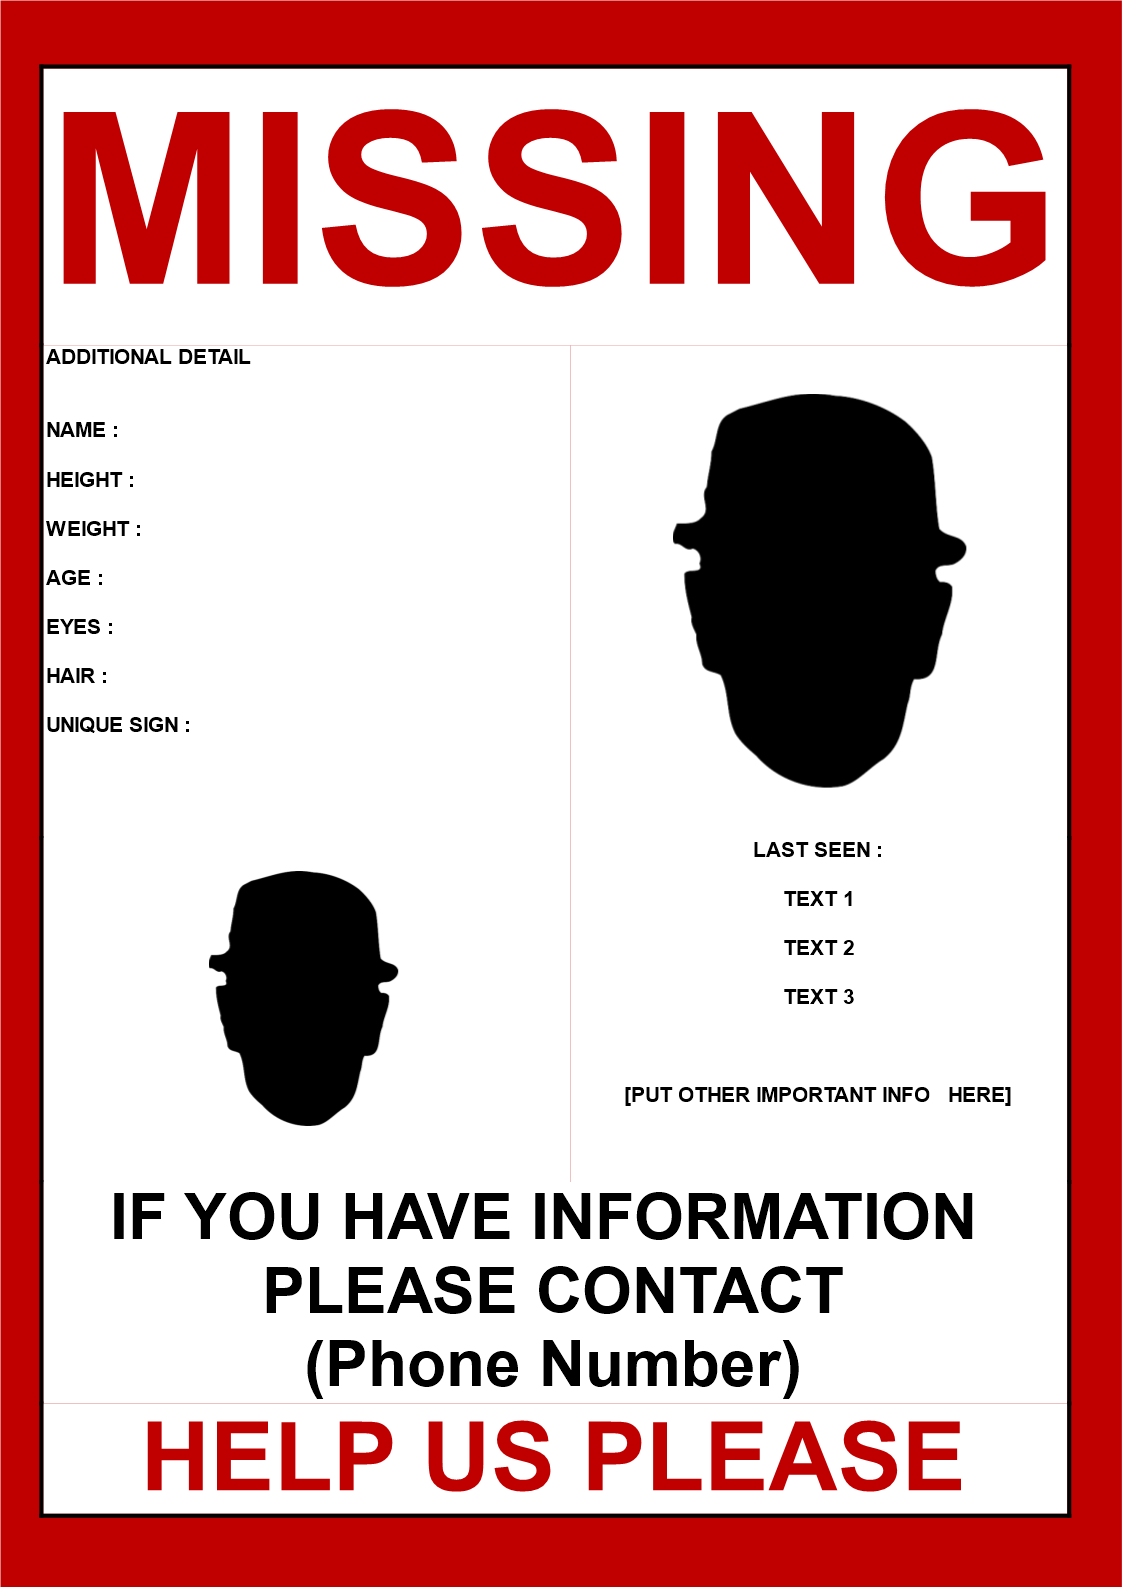 Missing person poster template 2 images Missing person poster 2 – Missing Person Poster Template